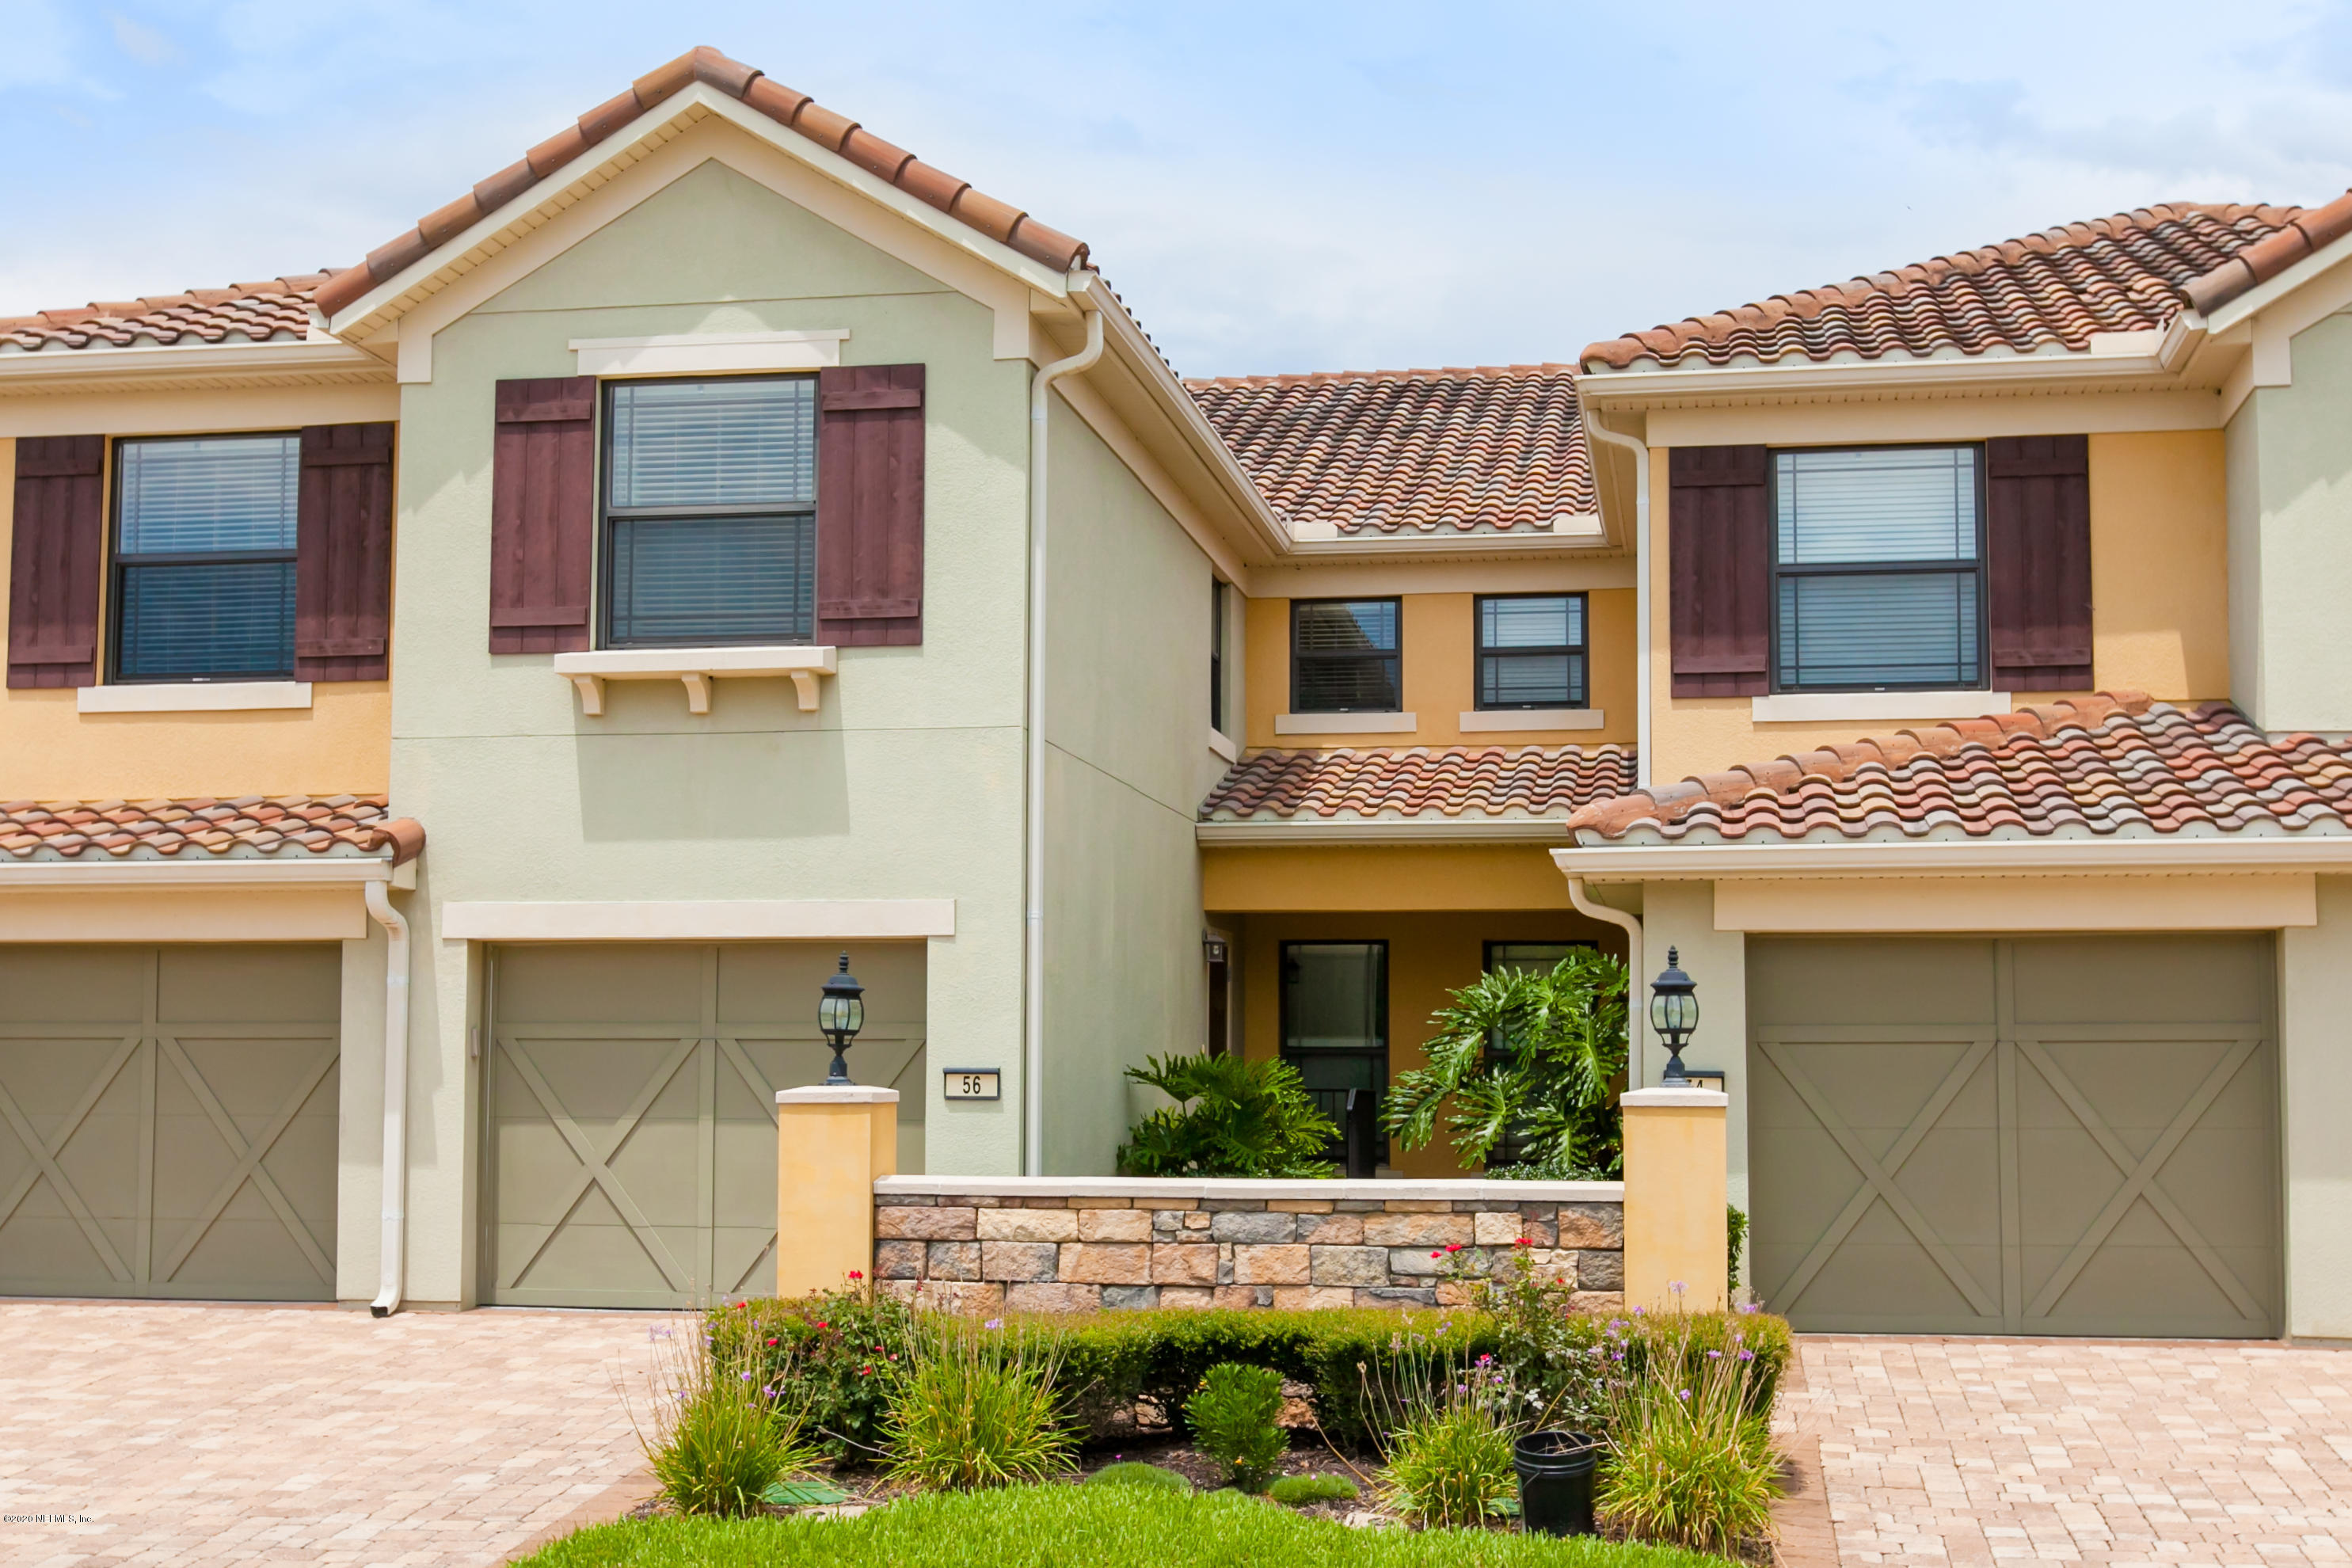 56 FAWN GULLY, PONTE VEDRA, FLORIDA 32081, 2 Bedrooms Bedrooms, ,2 BathroomsBathrooms,Rental,For Rent,FAWN GULLY,1052294